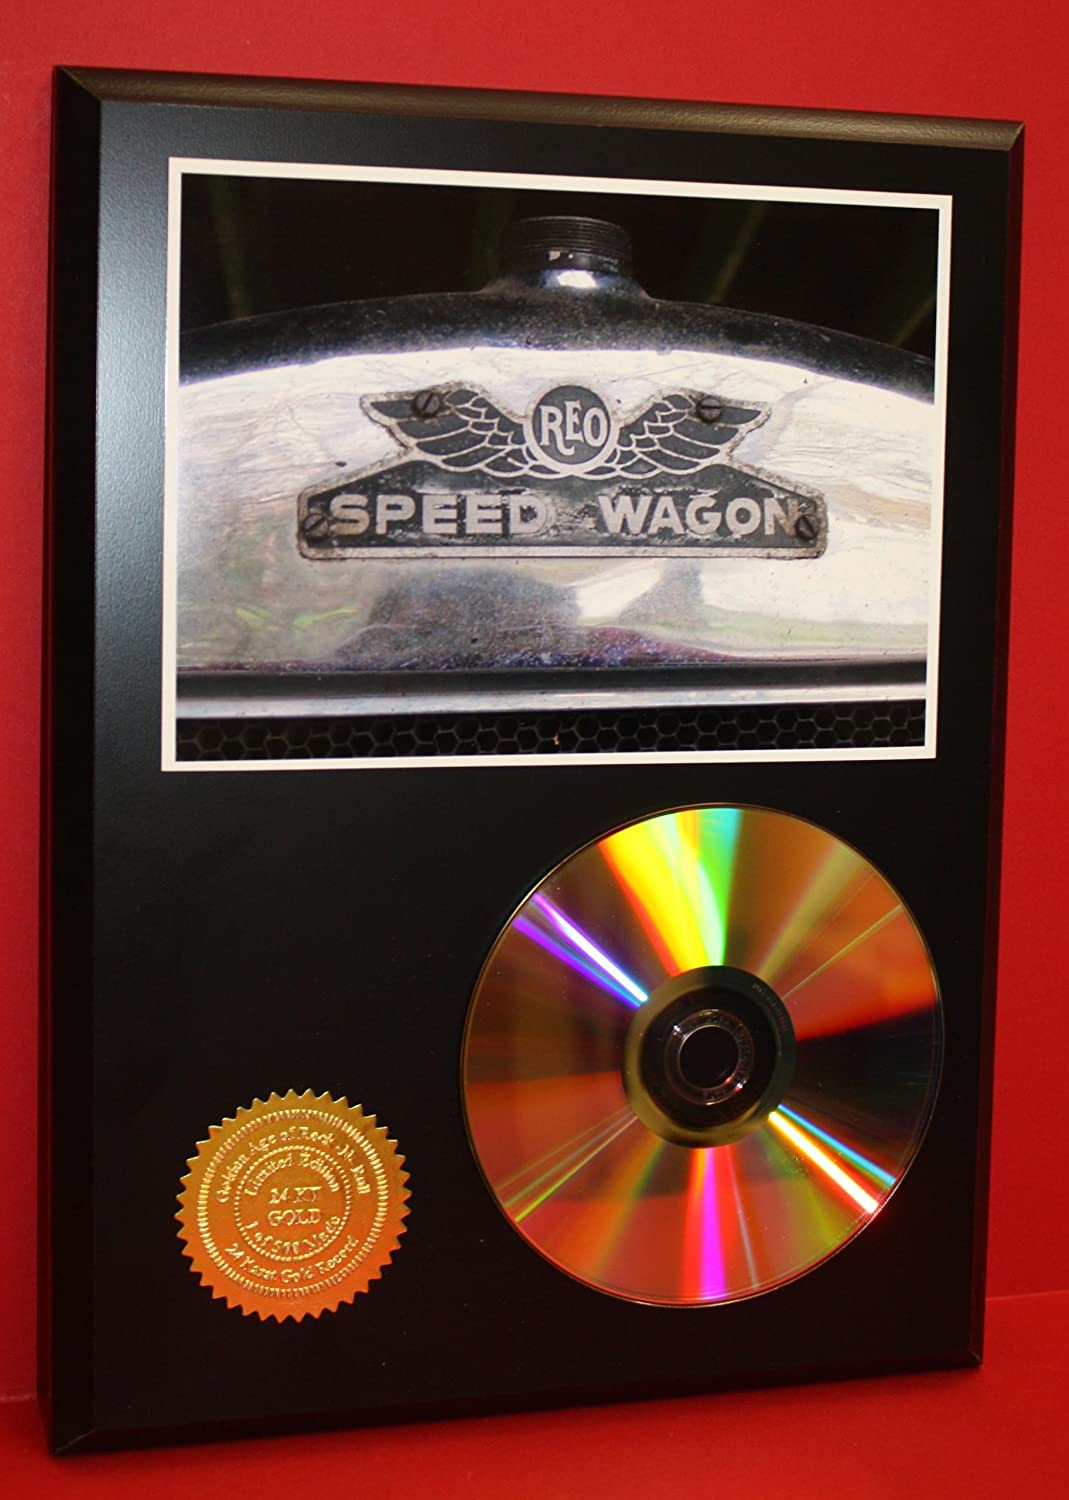 Reo Speedwagon 24Kt Gold Art CD Disc Display Award Quality - Limited Edition Gold Record Outlet